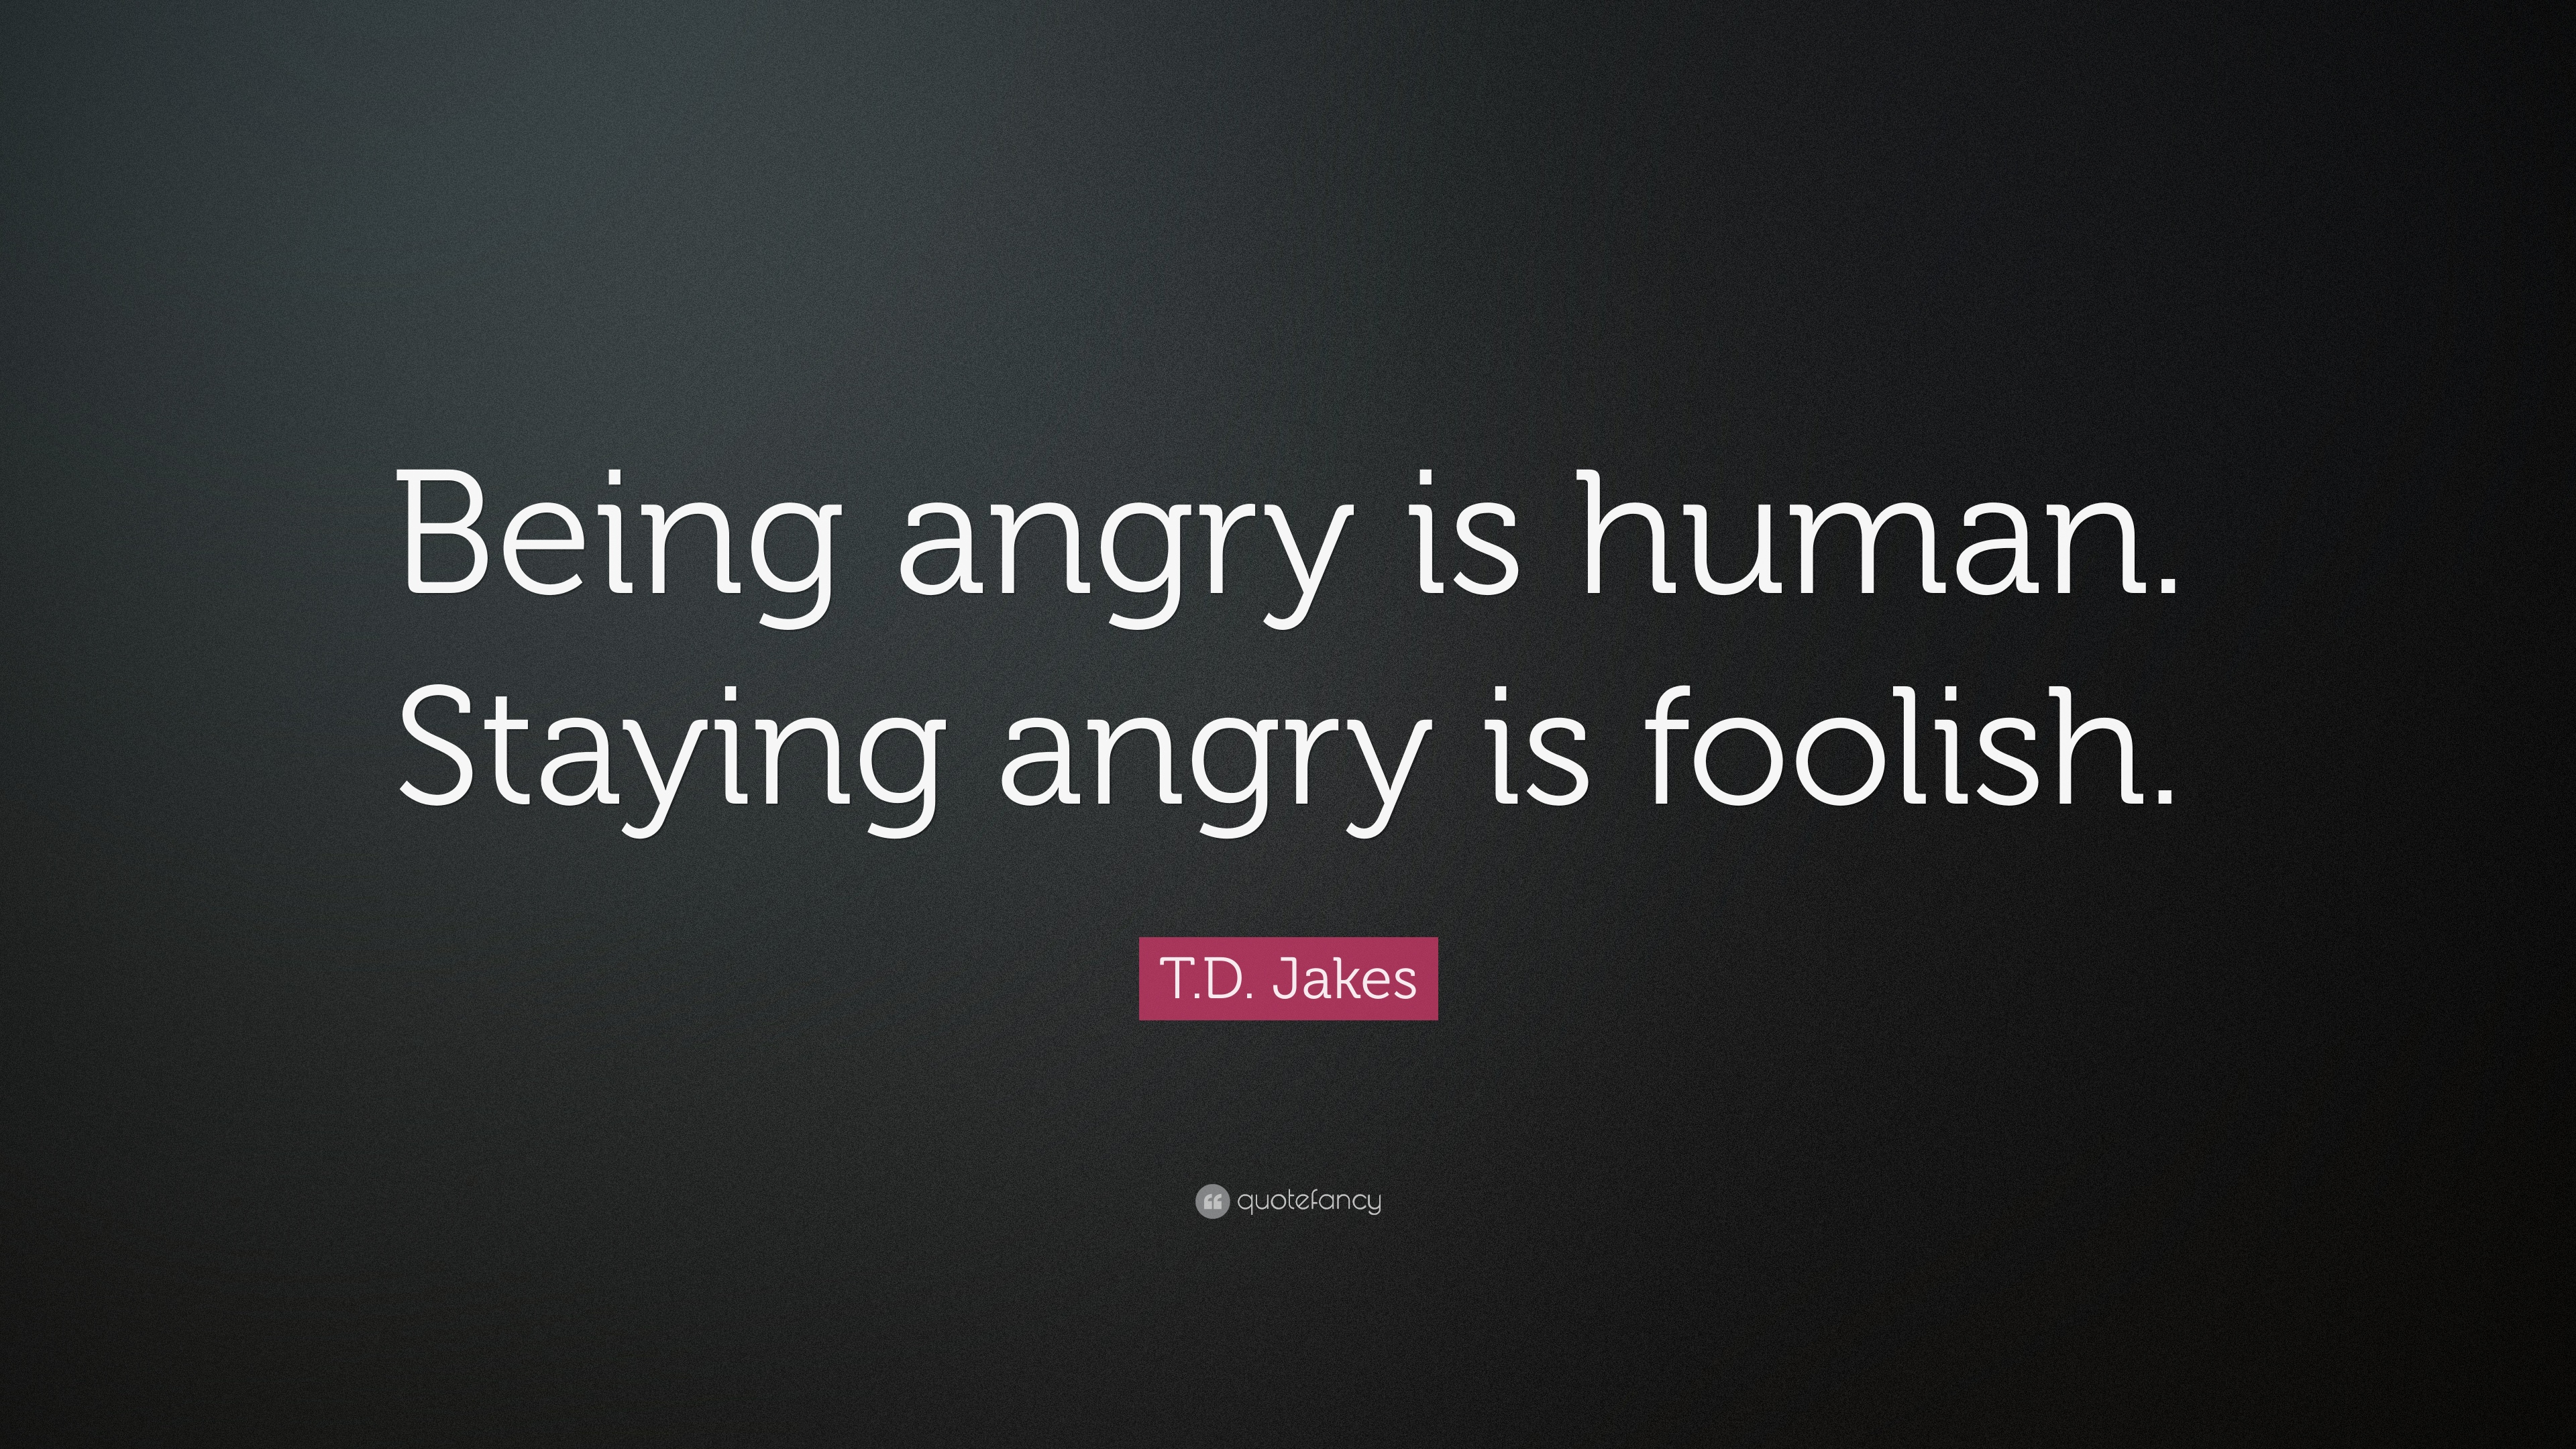 Good T.D. Jakes Quote: U201cBeing Angry Is Human. Staying Angry Is Foolish.u201d